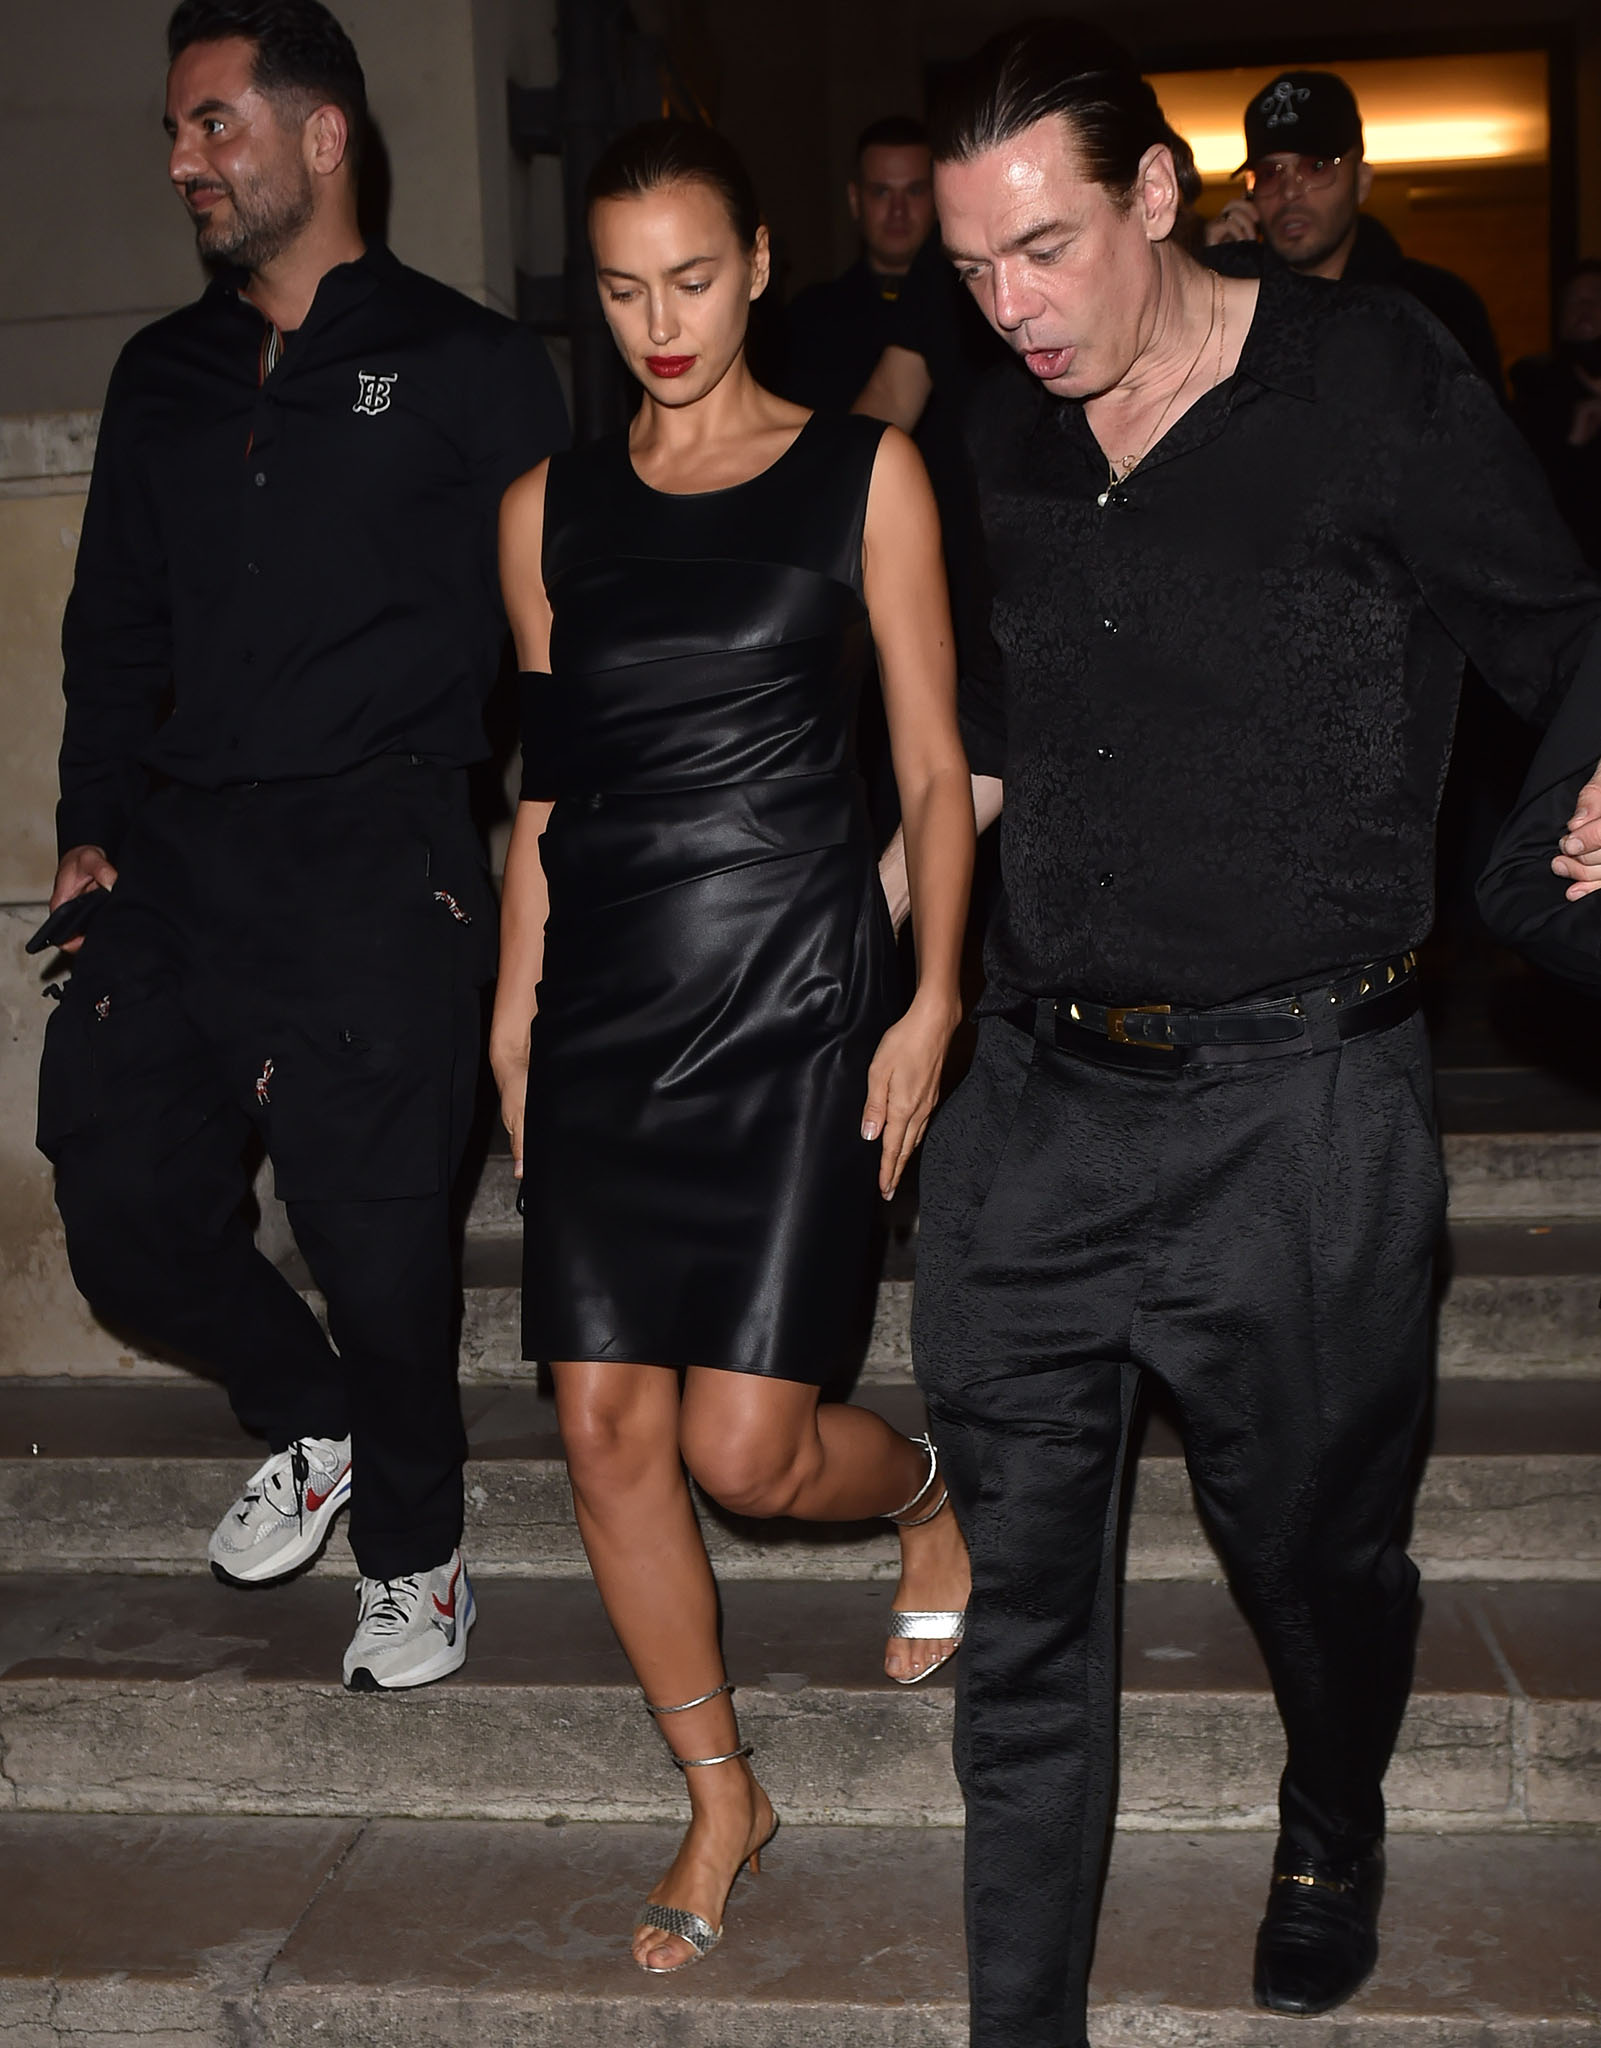 Irina Shayk at the launch of CR Fashion Book's latest Parade issue on September 30, 2021